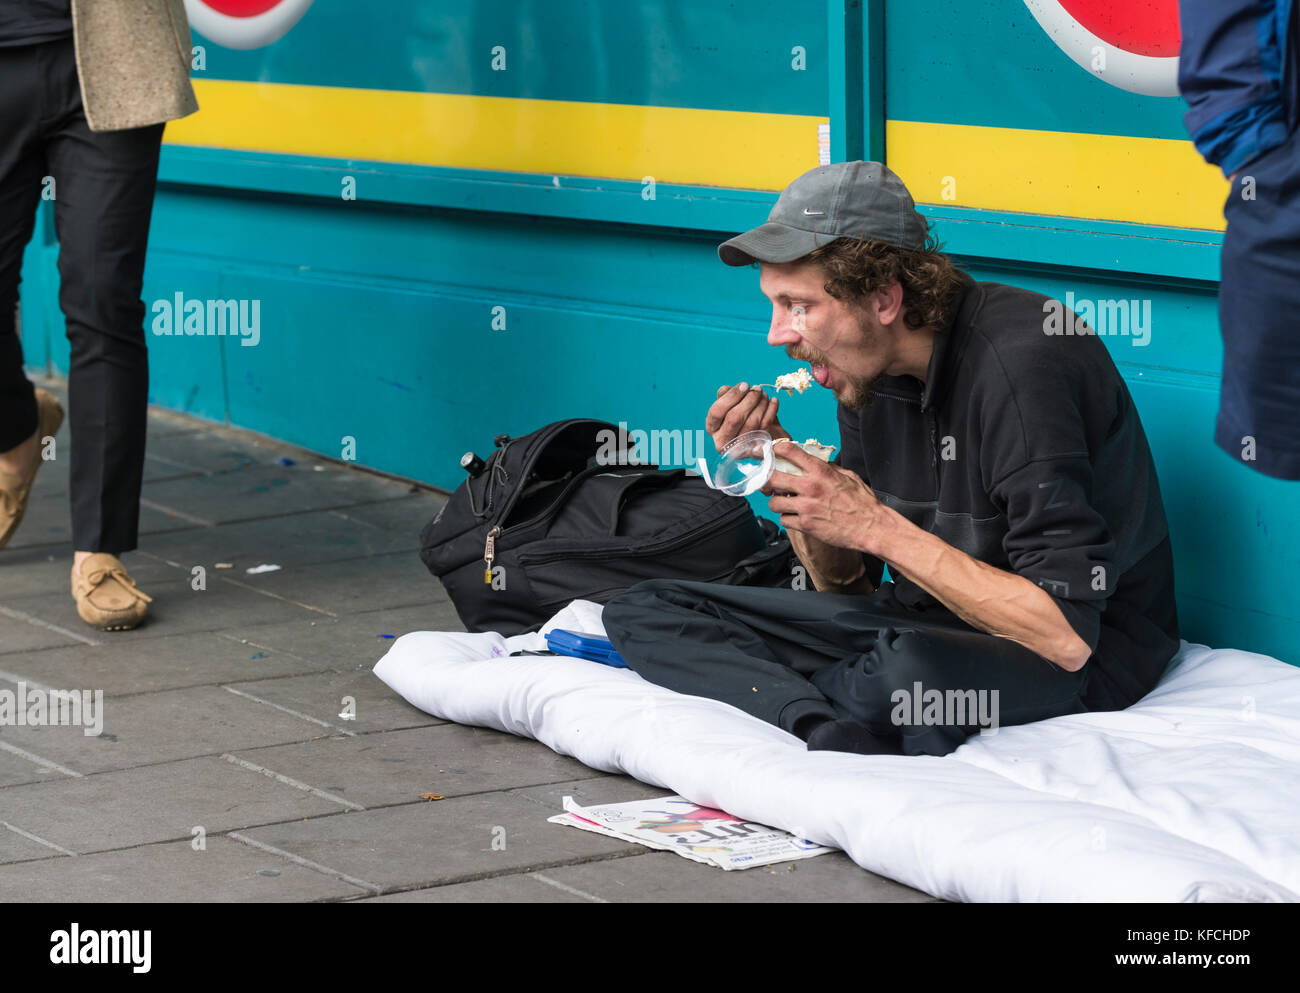 Pic of homeless person